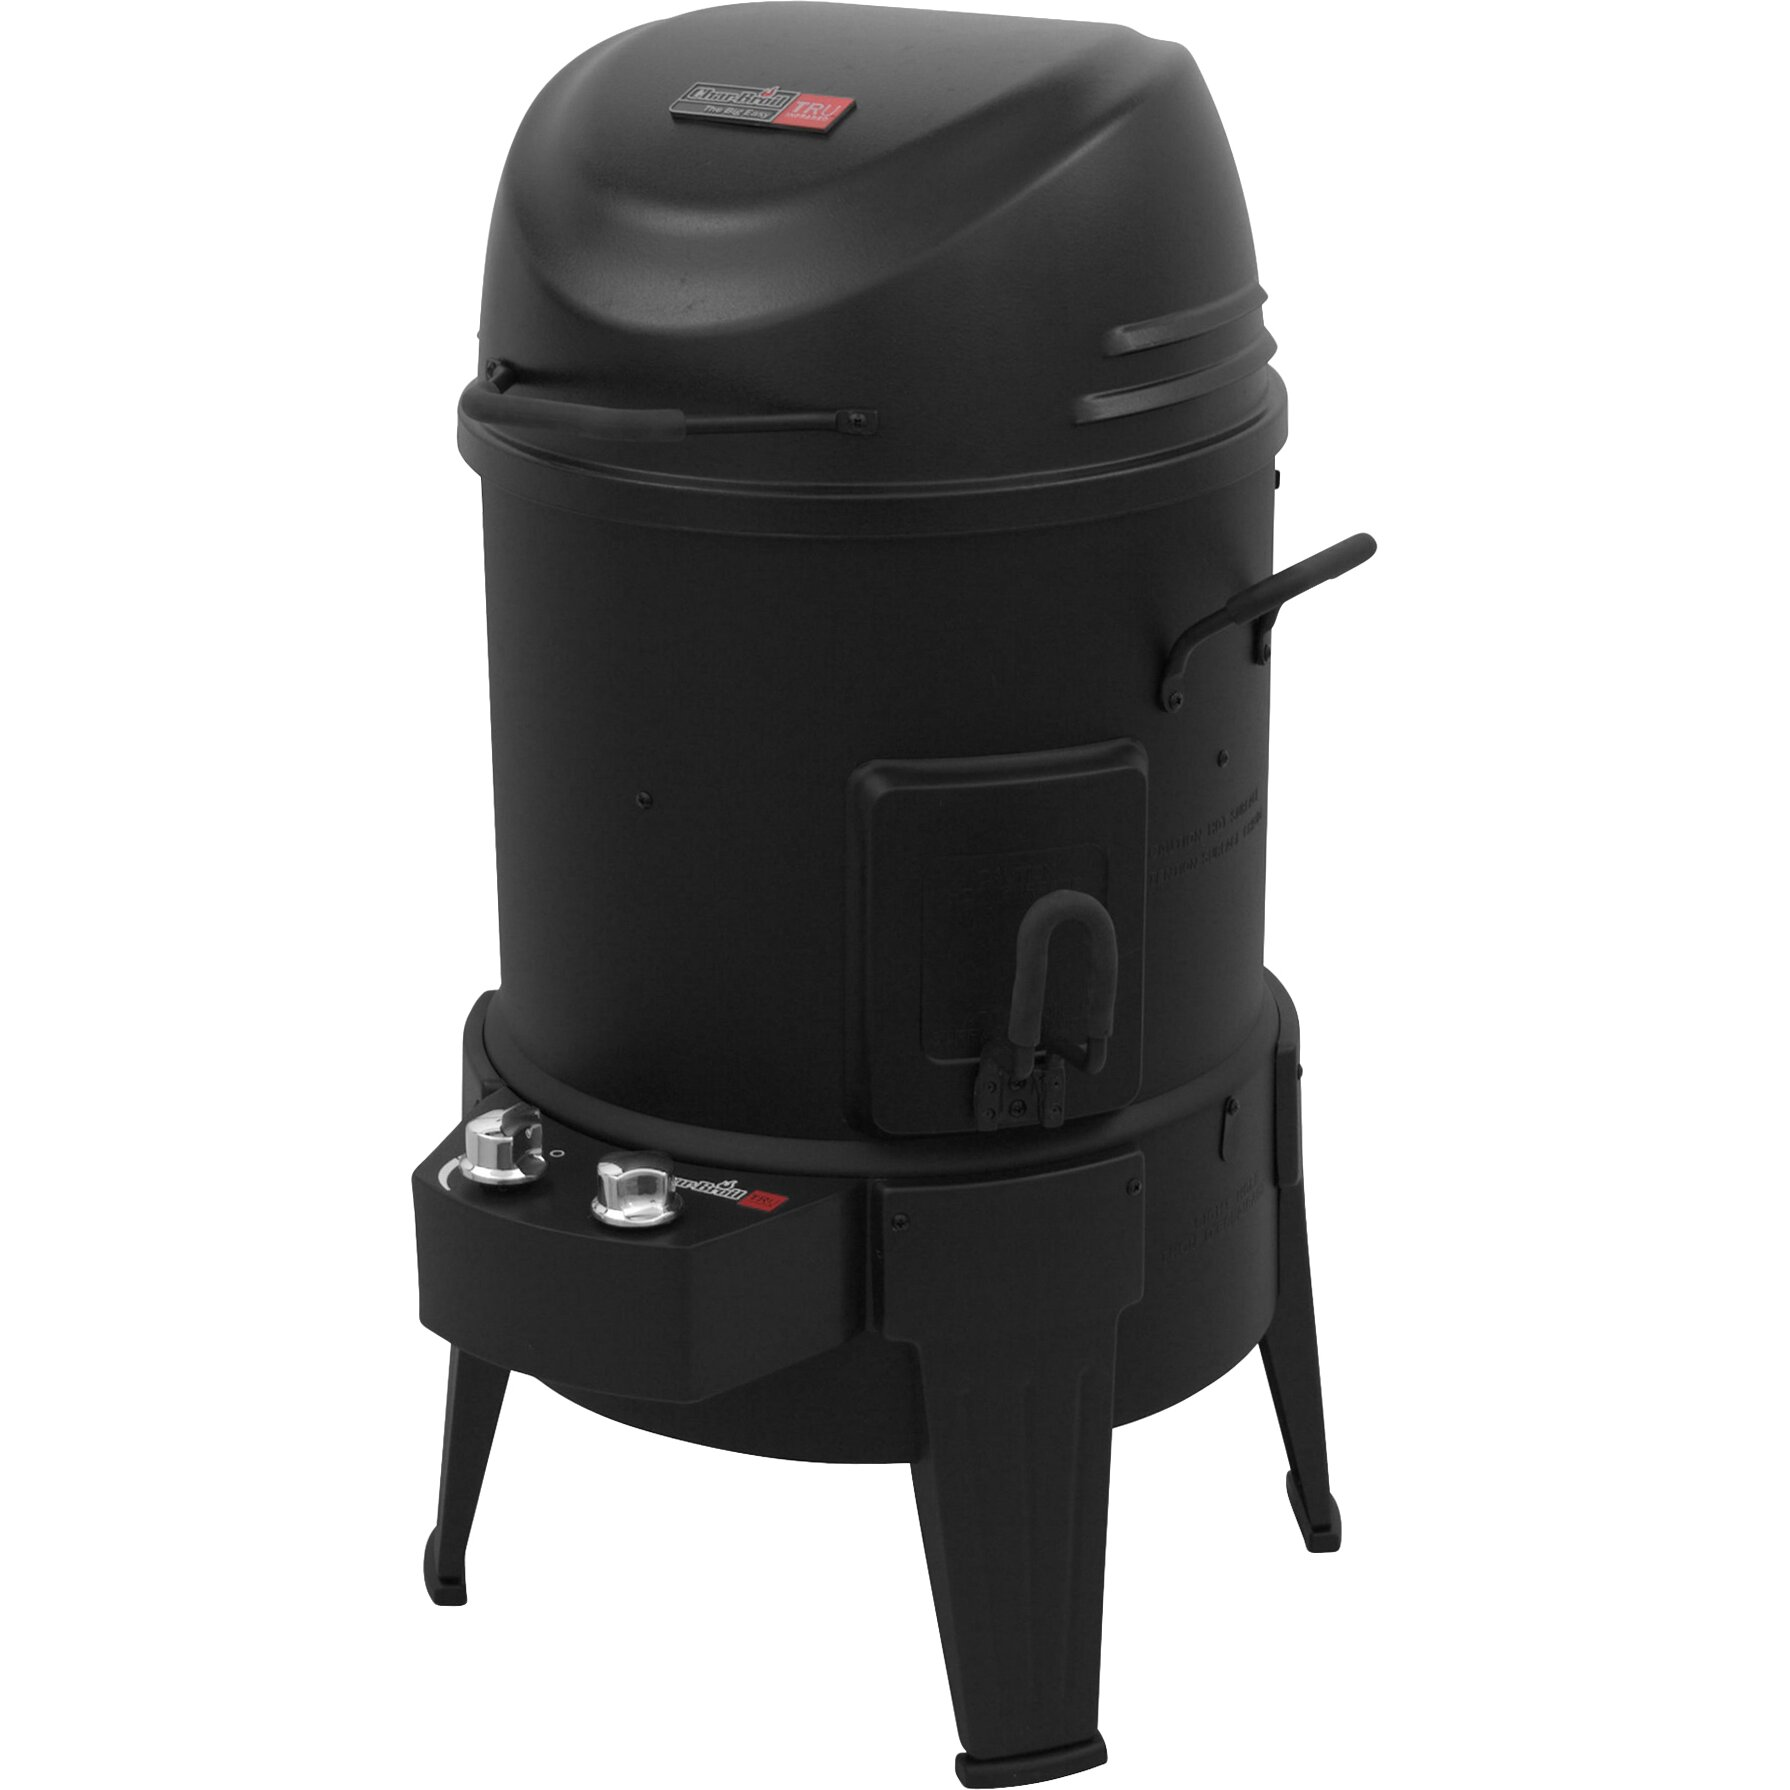 Charbroil The Big Easy Tru Infrared Propane Smoker